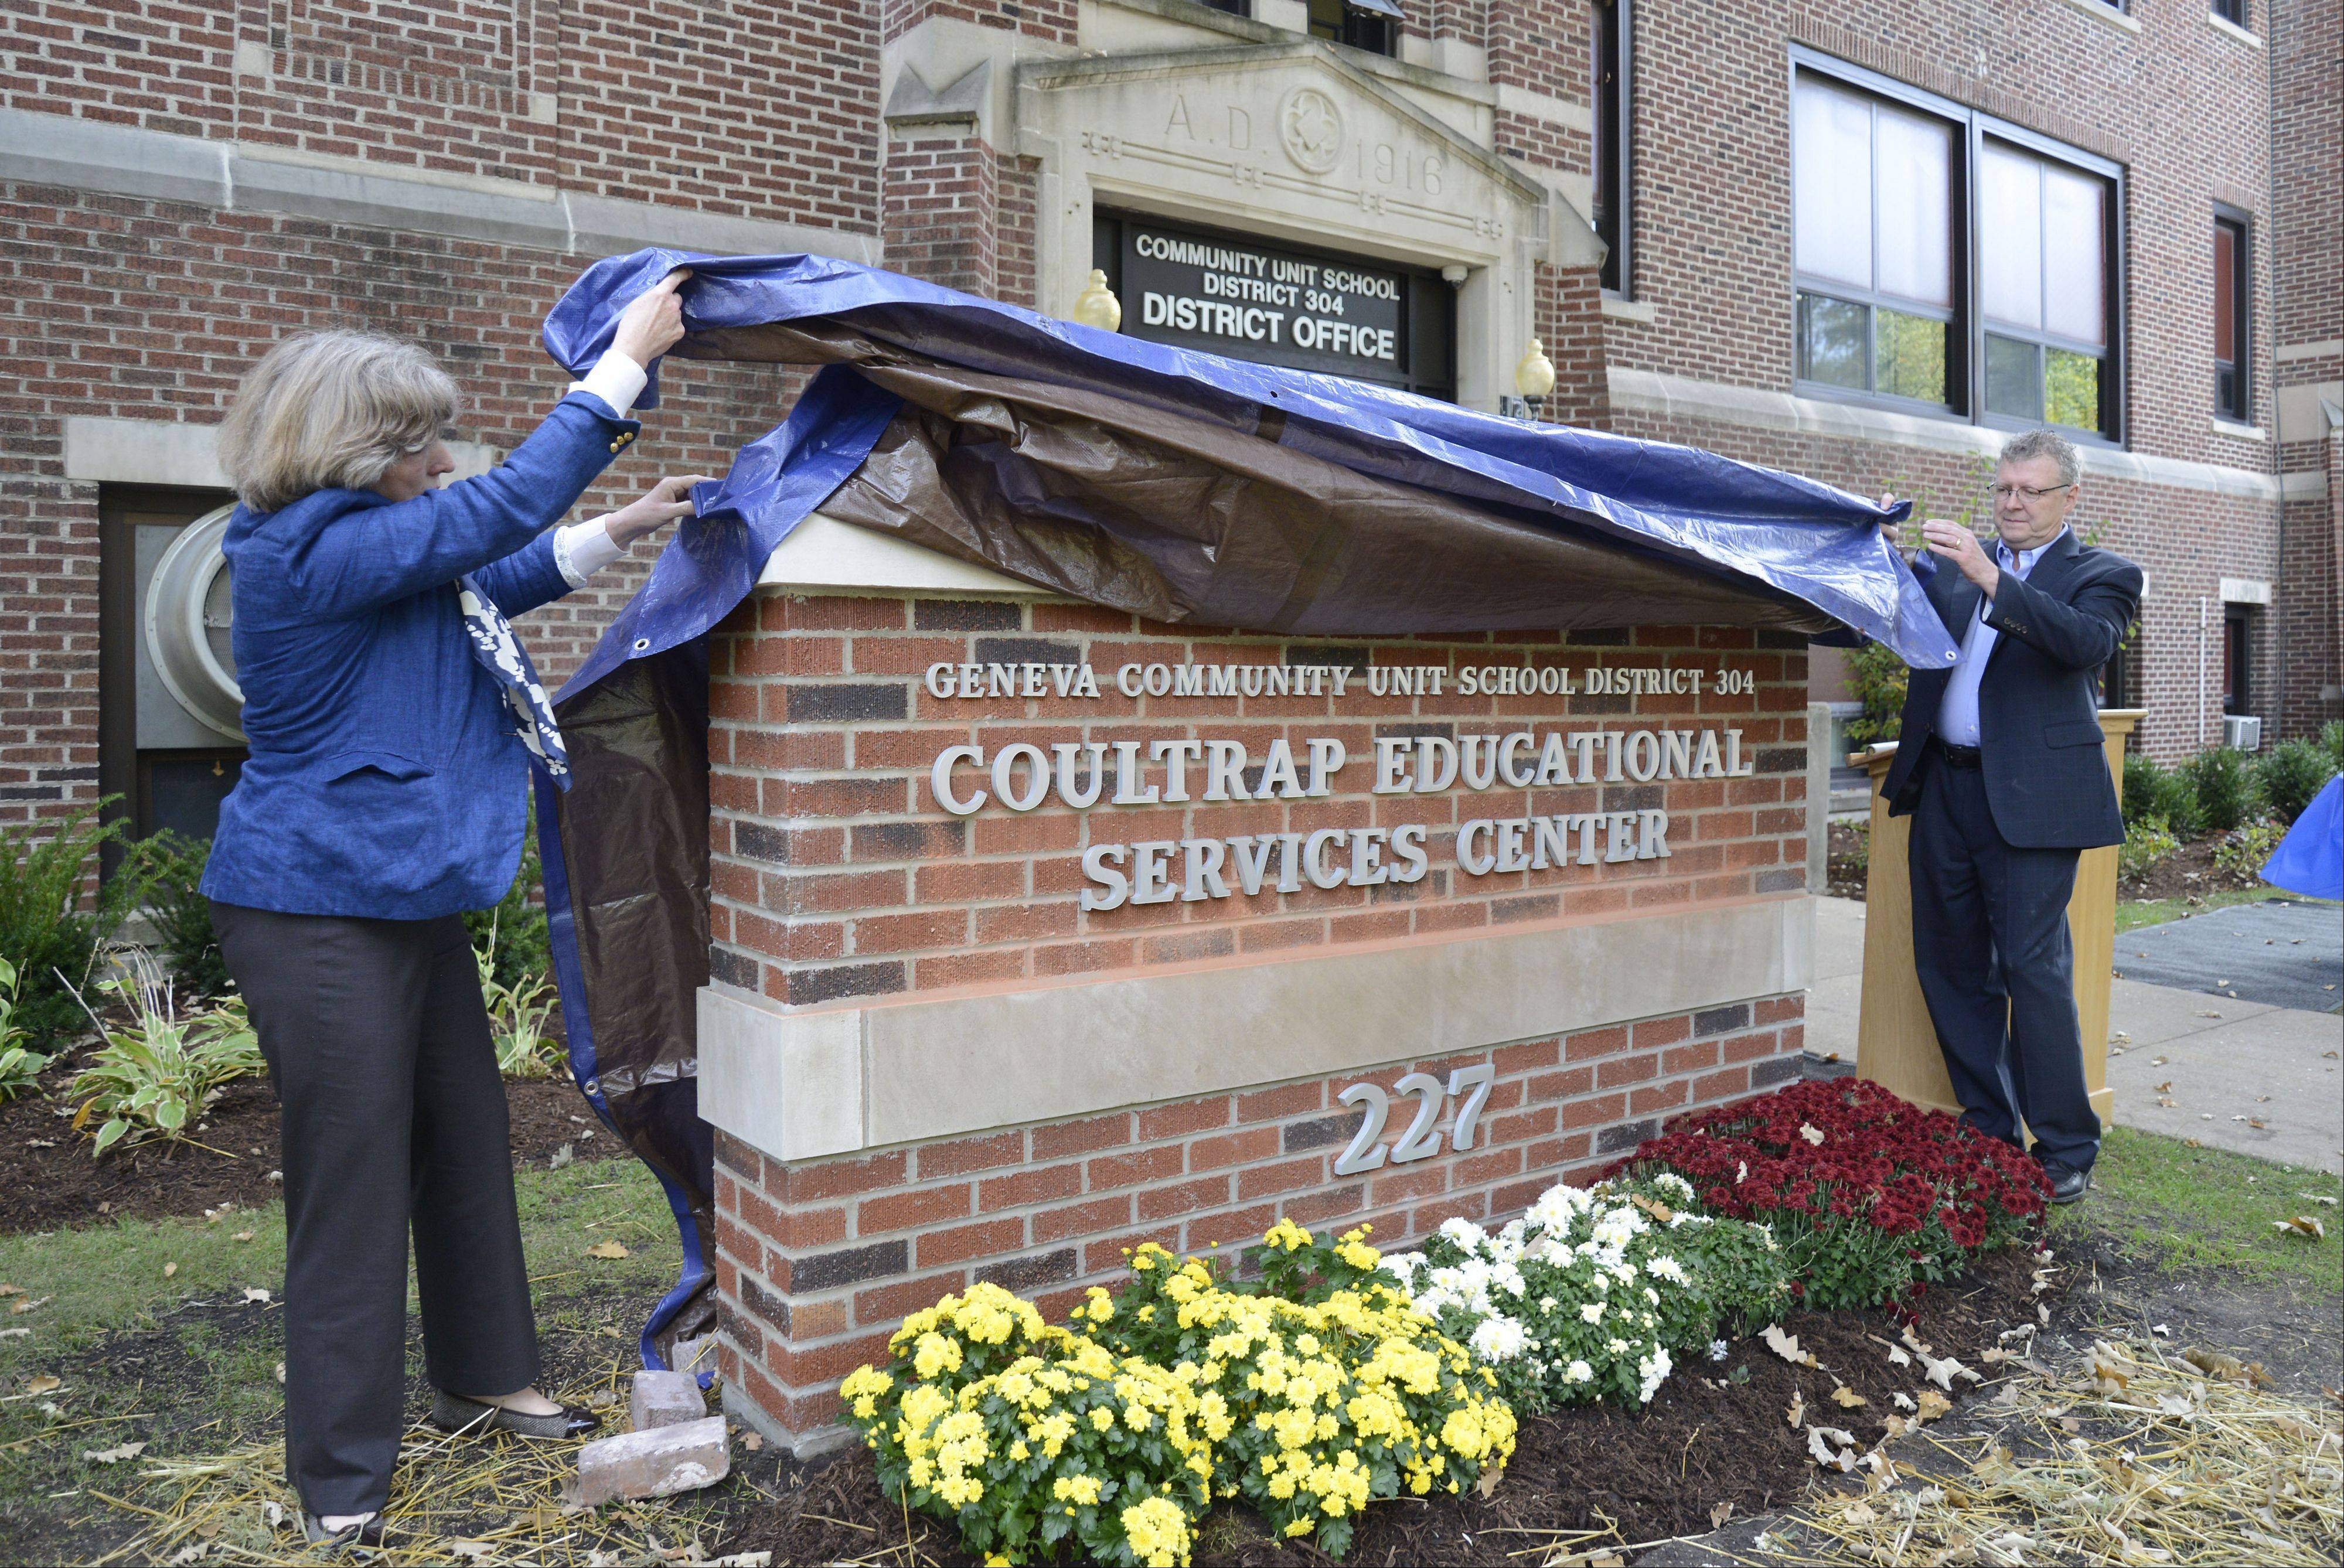 Martha Coultrap of New York City and her brother Paul Coultrap of Downers Grove unveil the sign for the Coultrap Educational Services Center named in honor of their grandfather Harry M. Coultrap on Saturday. Bricks from the recently razed Coultrap Elementary School were used to make the sign, as well as a brick walkway to the adjacent flagpole.